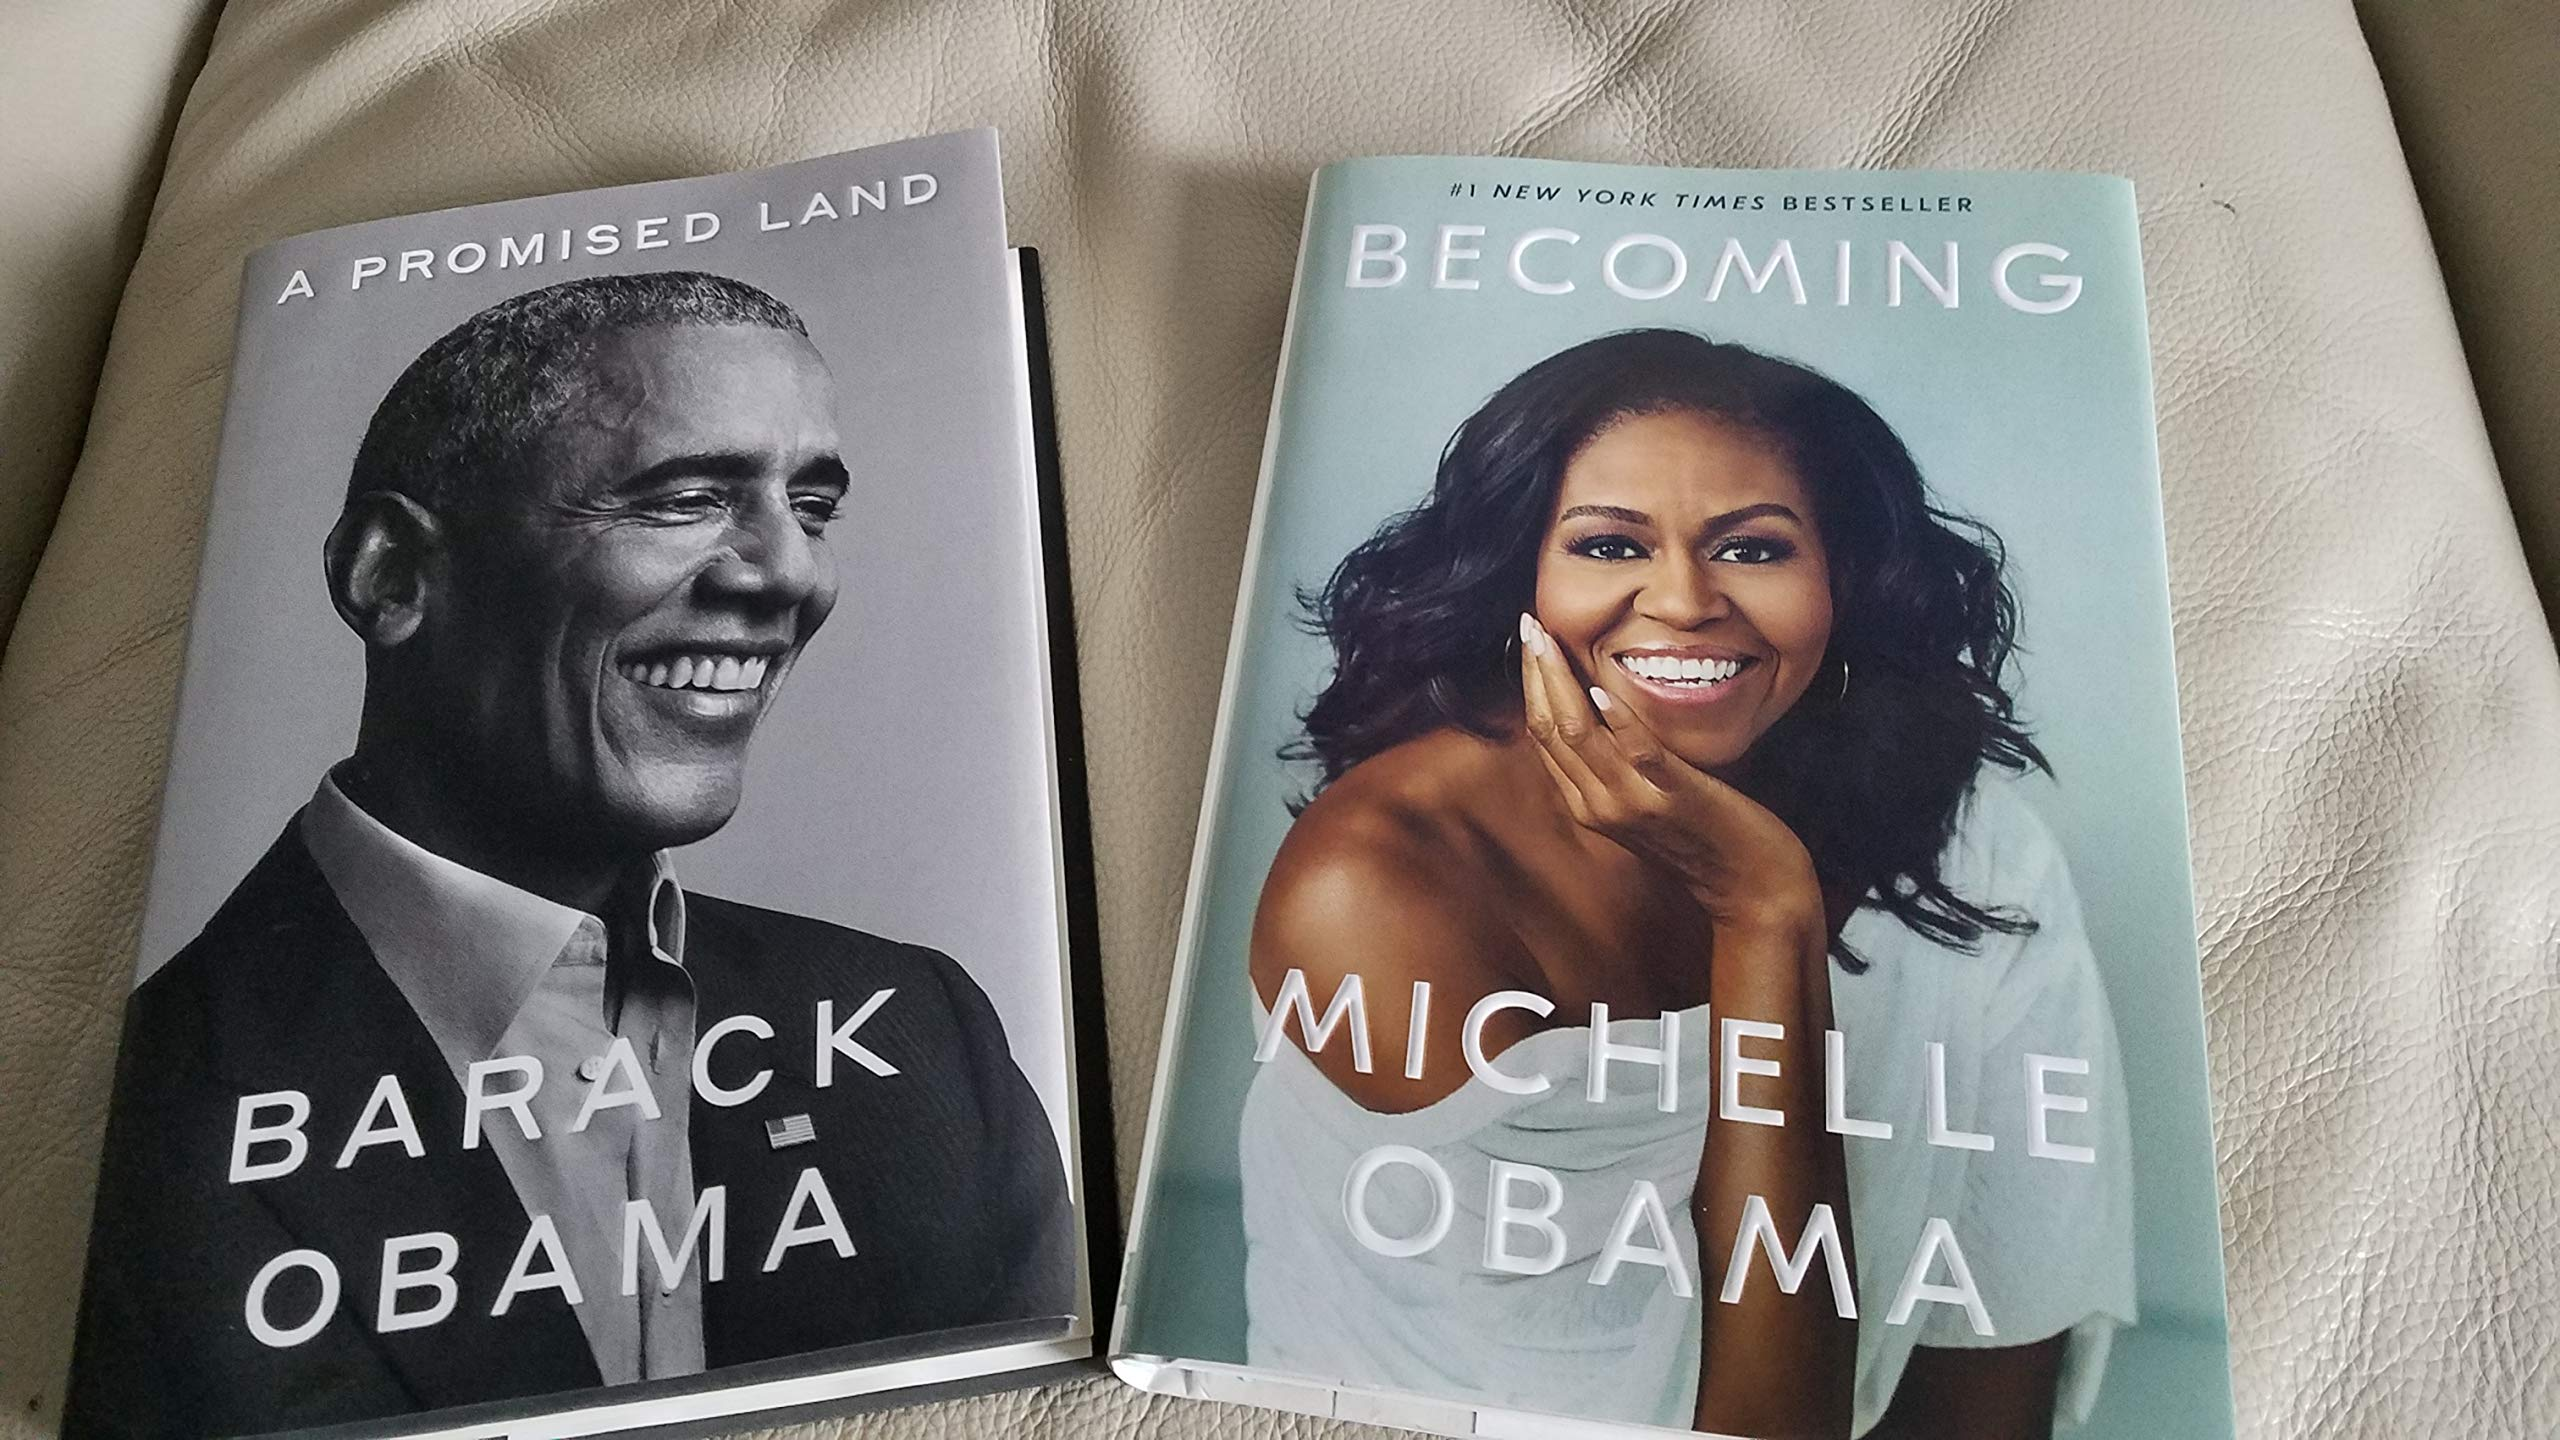 BARACK & MICHELLE OBAMA 2 BOOK SET - - A PROMISED LAND & BECOMING